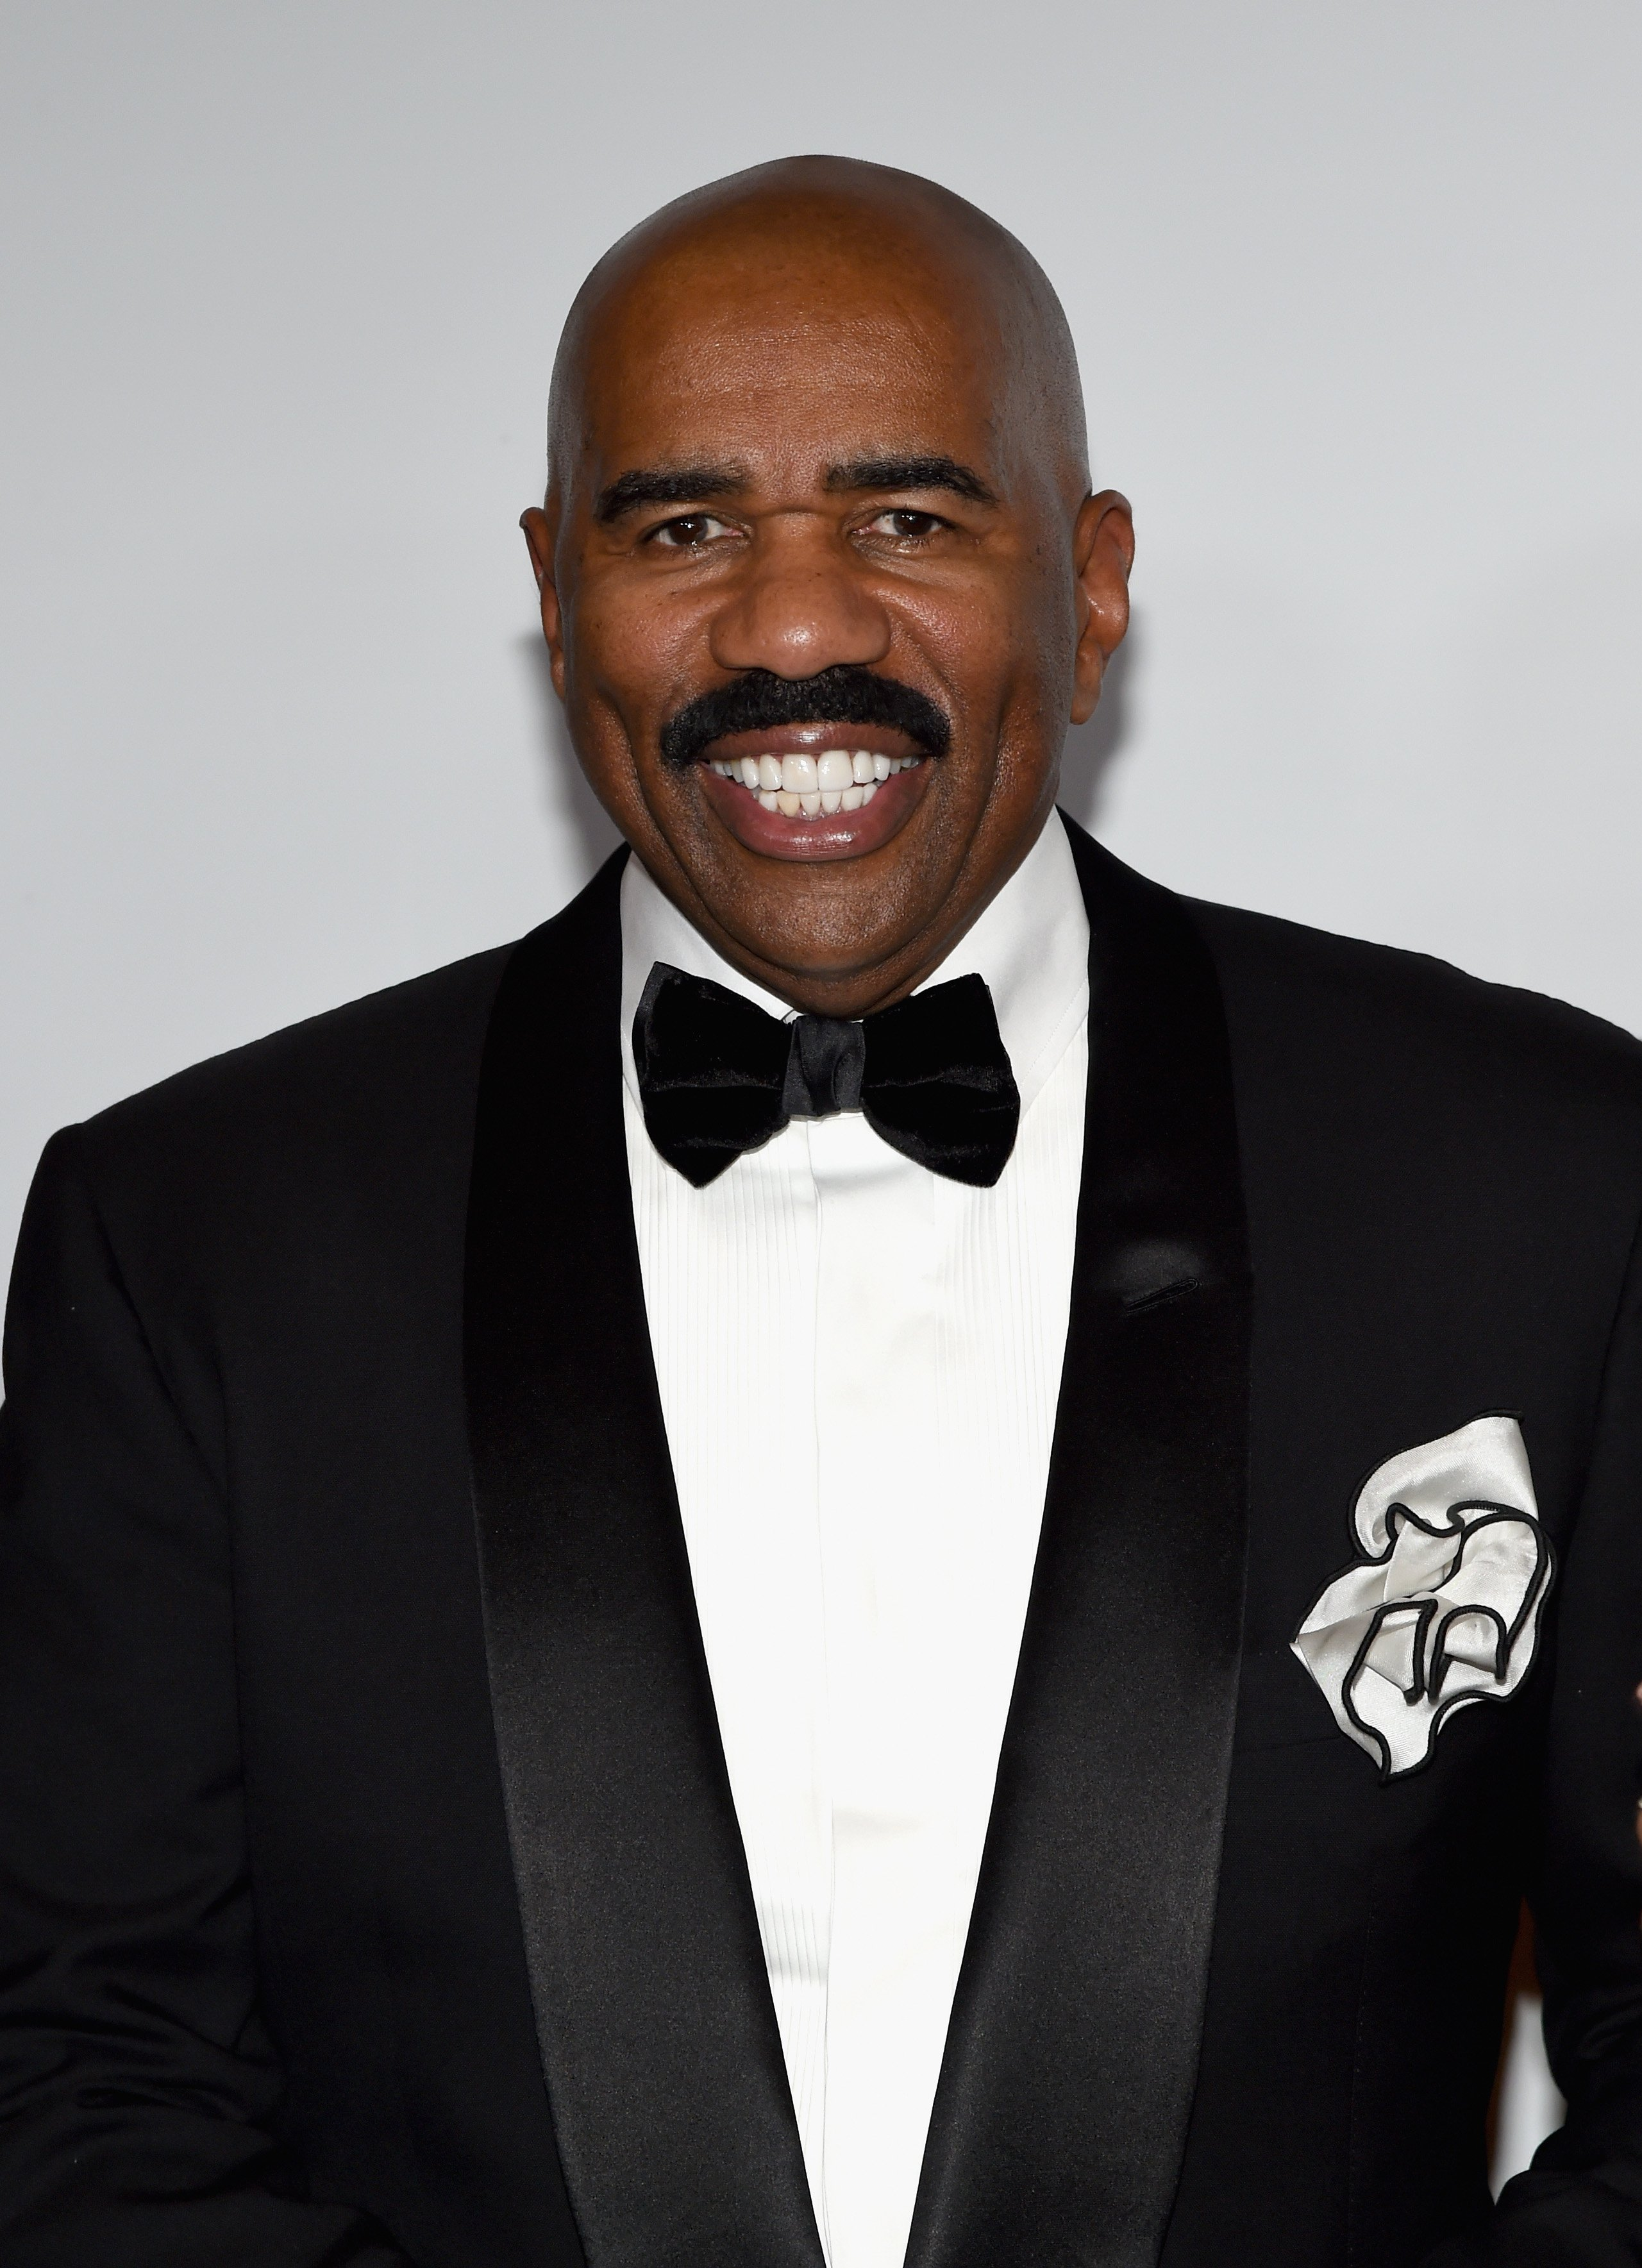 Steve Harvey at the 2015 Miss Universe Pageant at Planet Hollywood Resort & Casino on December 20, 2015 in Las Vegas, Nevada.| Source: Getty Images